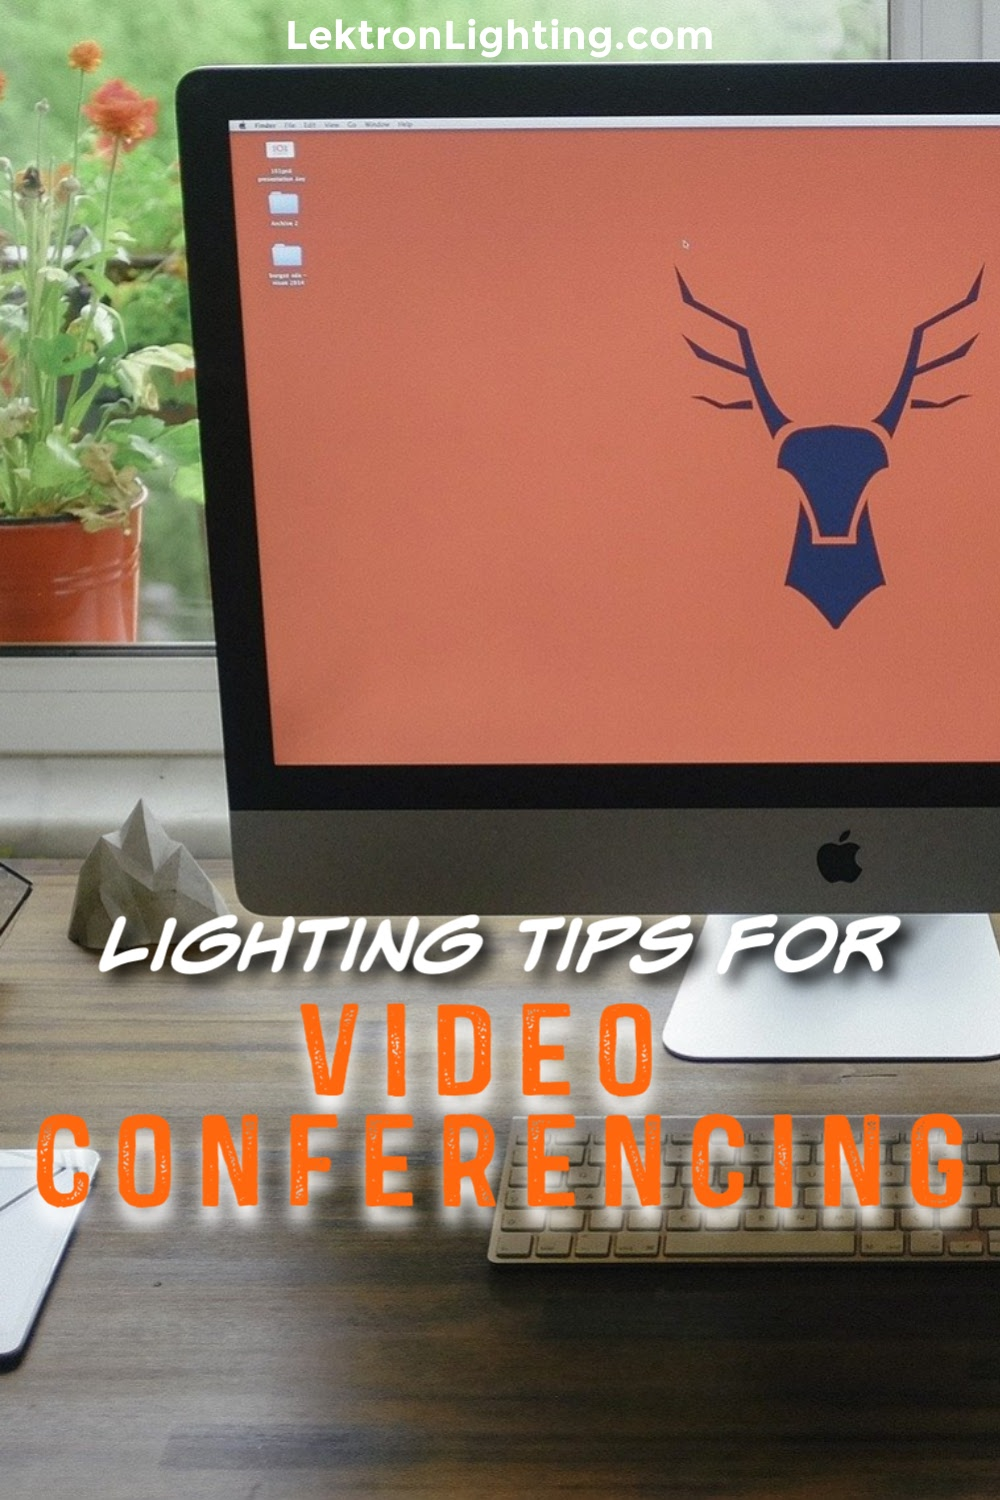 The best lighting tips for video conferencing can help you look your best while working from home using a laptop or desktop computer.